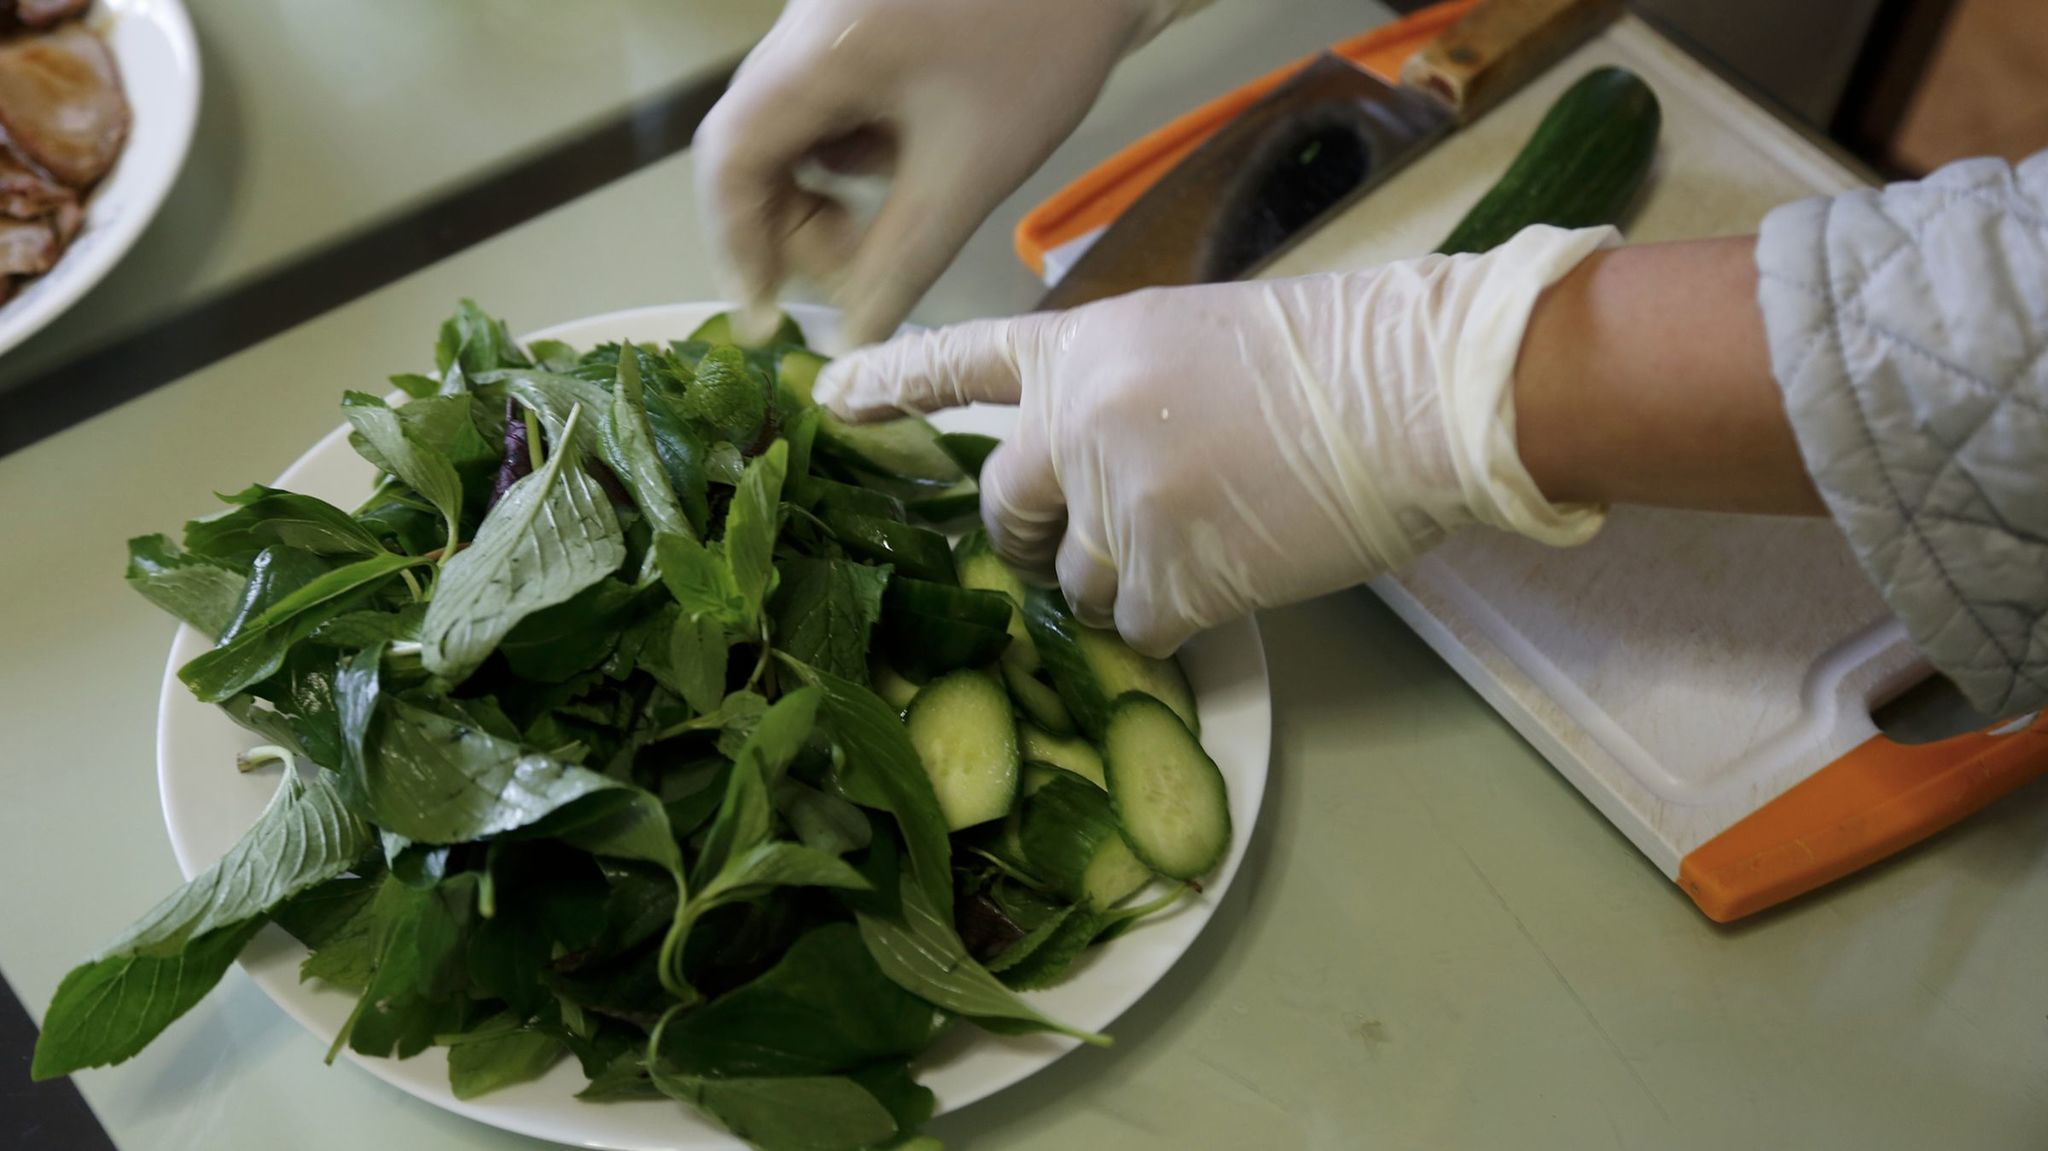 As part of this afternoon's lunch, Hue Phan offers a salad bursting with fresh lettuce, cucumber and mint.